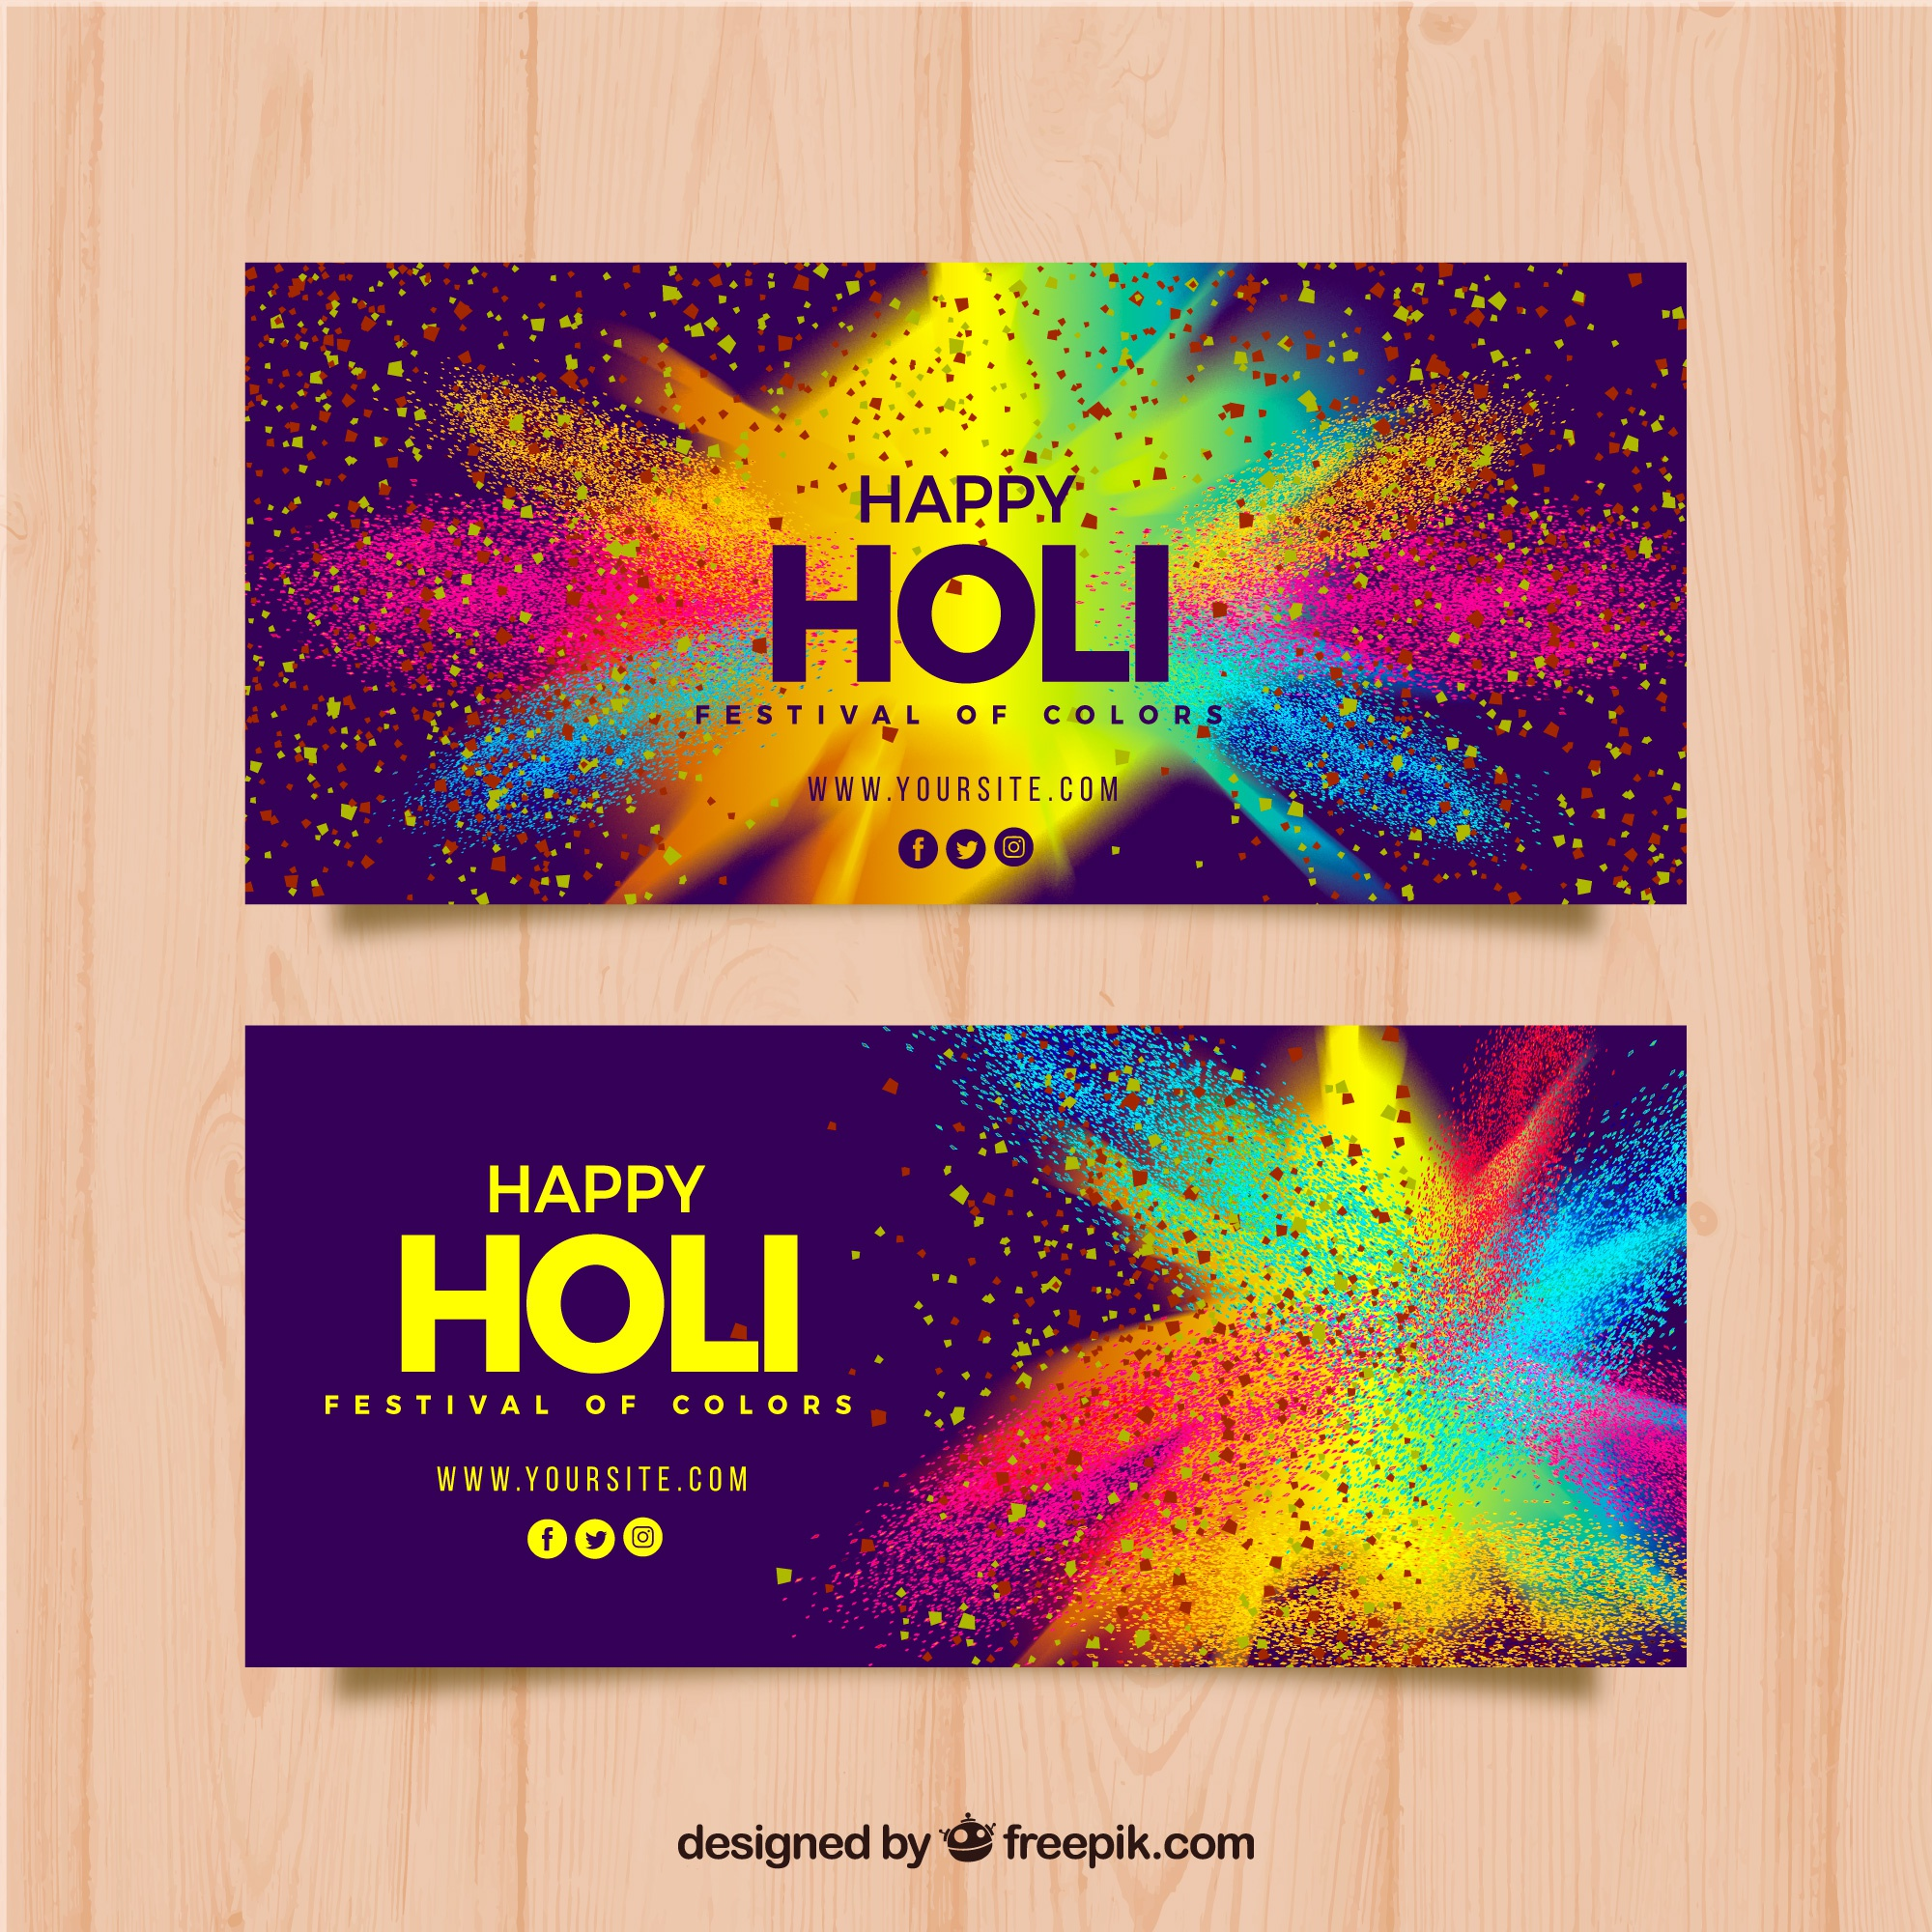 Realistic holi festival banners